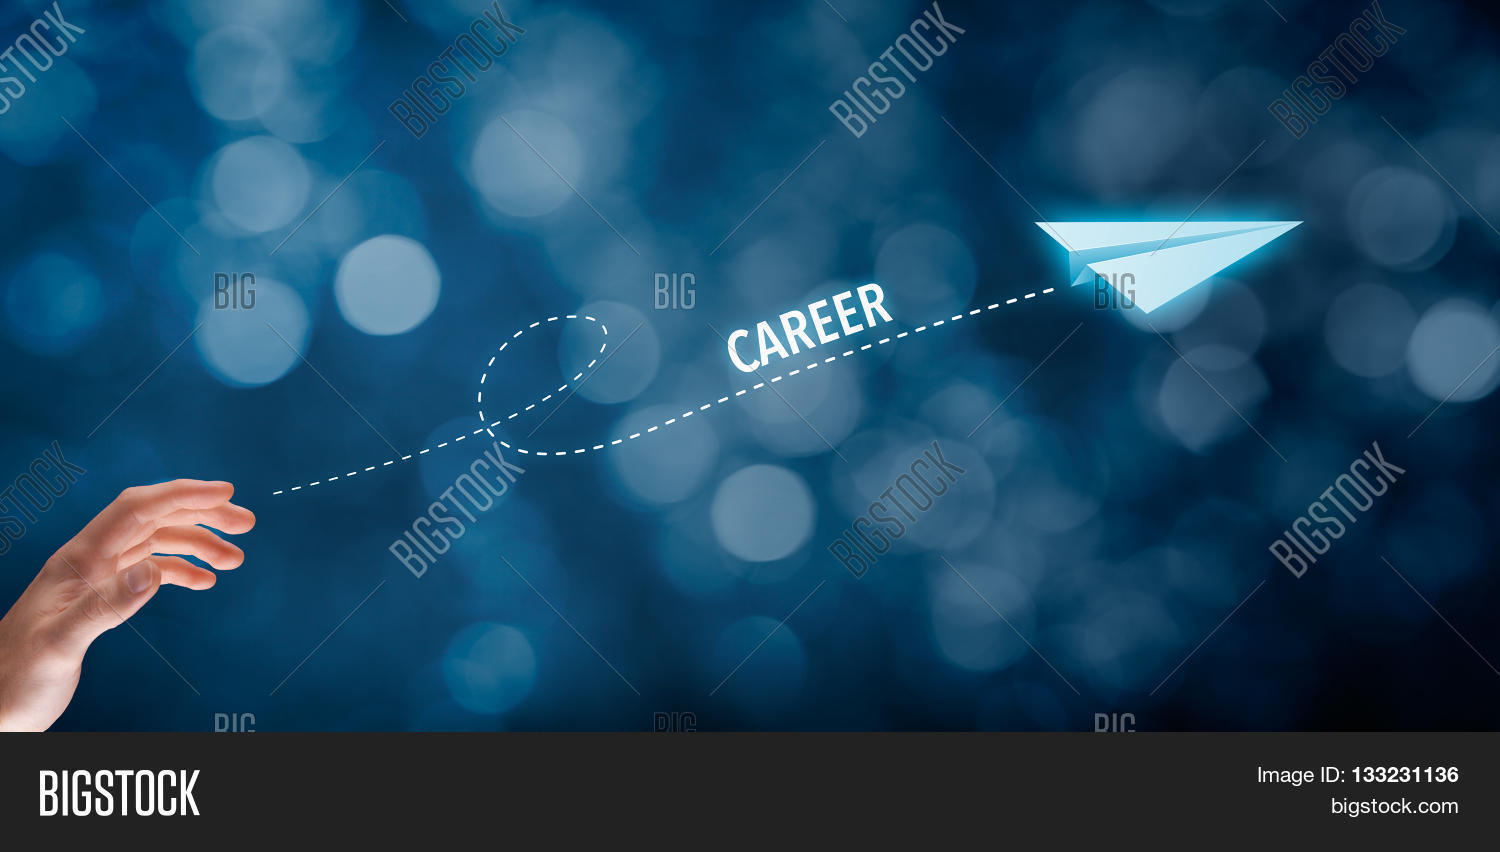 Career Acceleration Image Photo Free Trial Bigstock